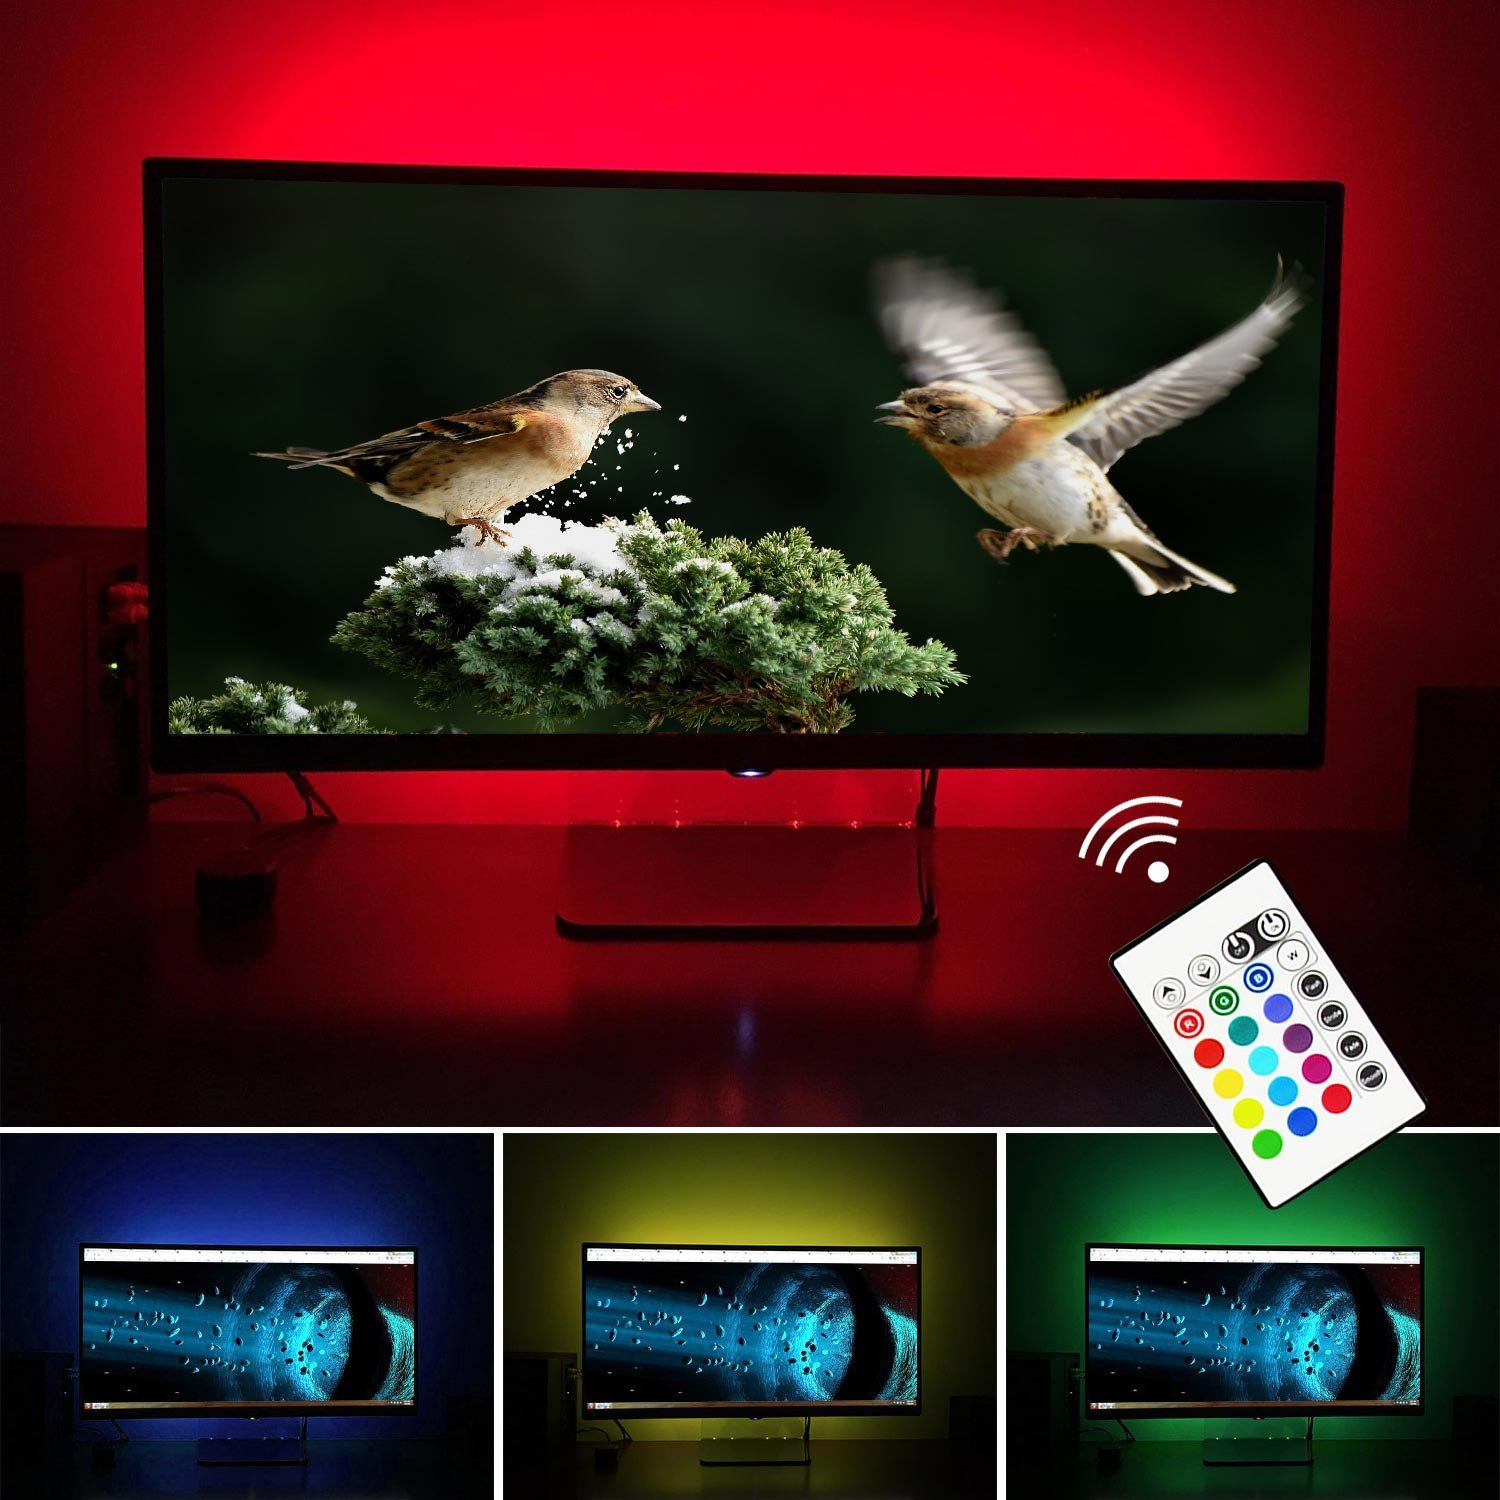 Simptech Led Strip Lights TV Backlight, Bias Lighting for 32 to 60 inch Flat HDTV, USB Powered, RGB Changing Color,Ambient Background Lighting for TV (32